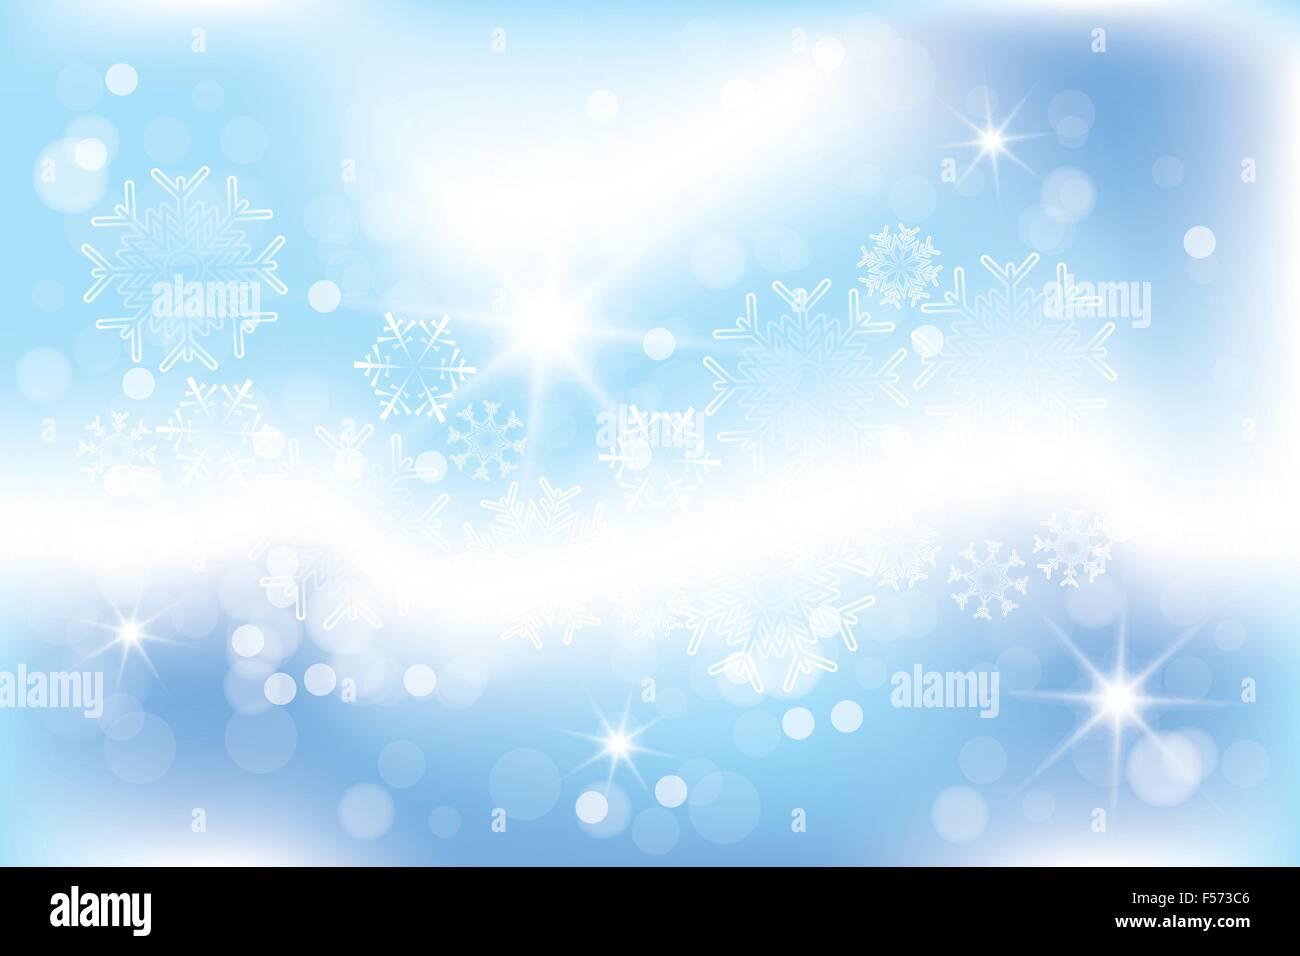 Template For A Christmas Card With Shimmering Design Elements Stars - Christmas card template blue